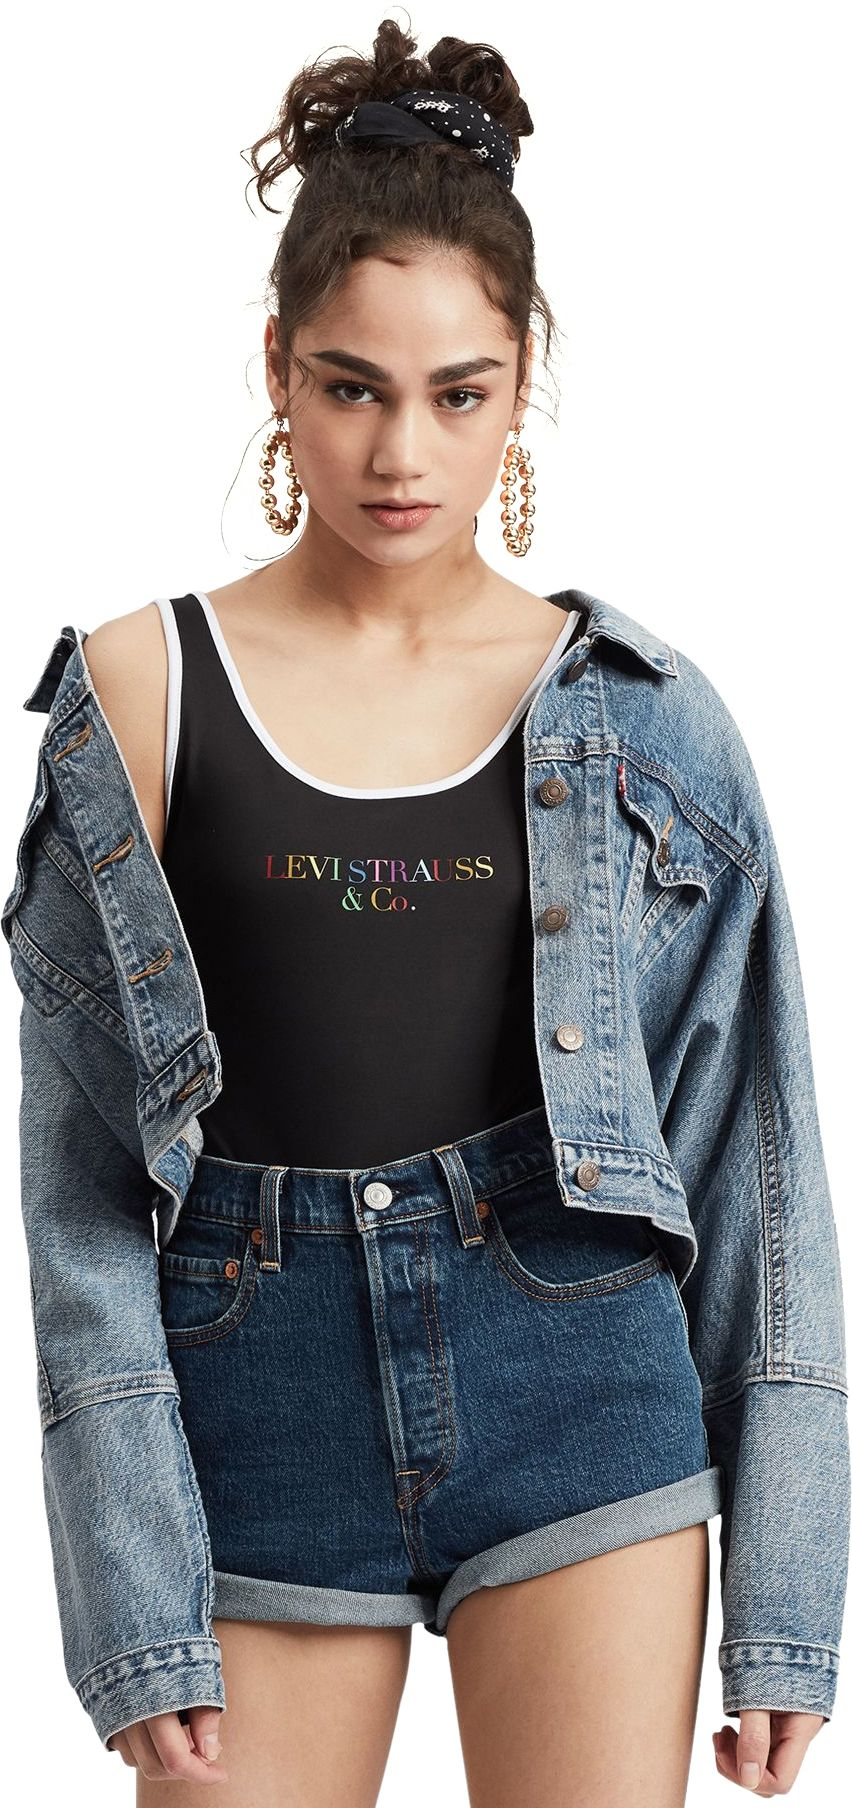 Levi's 90s Text Logo Bodysuit Black